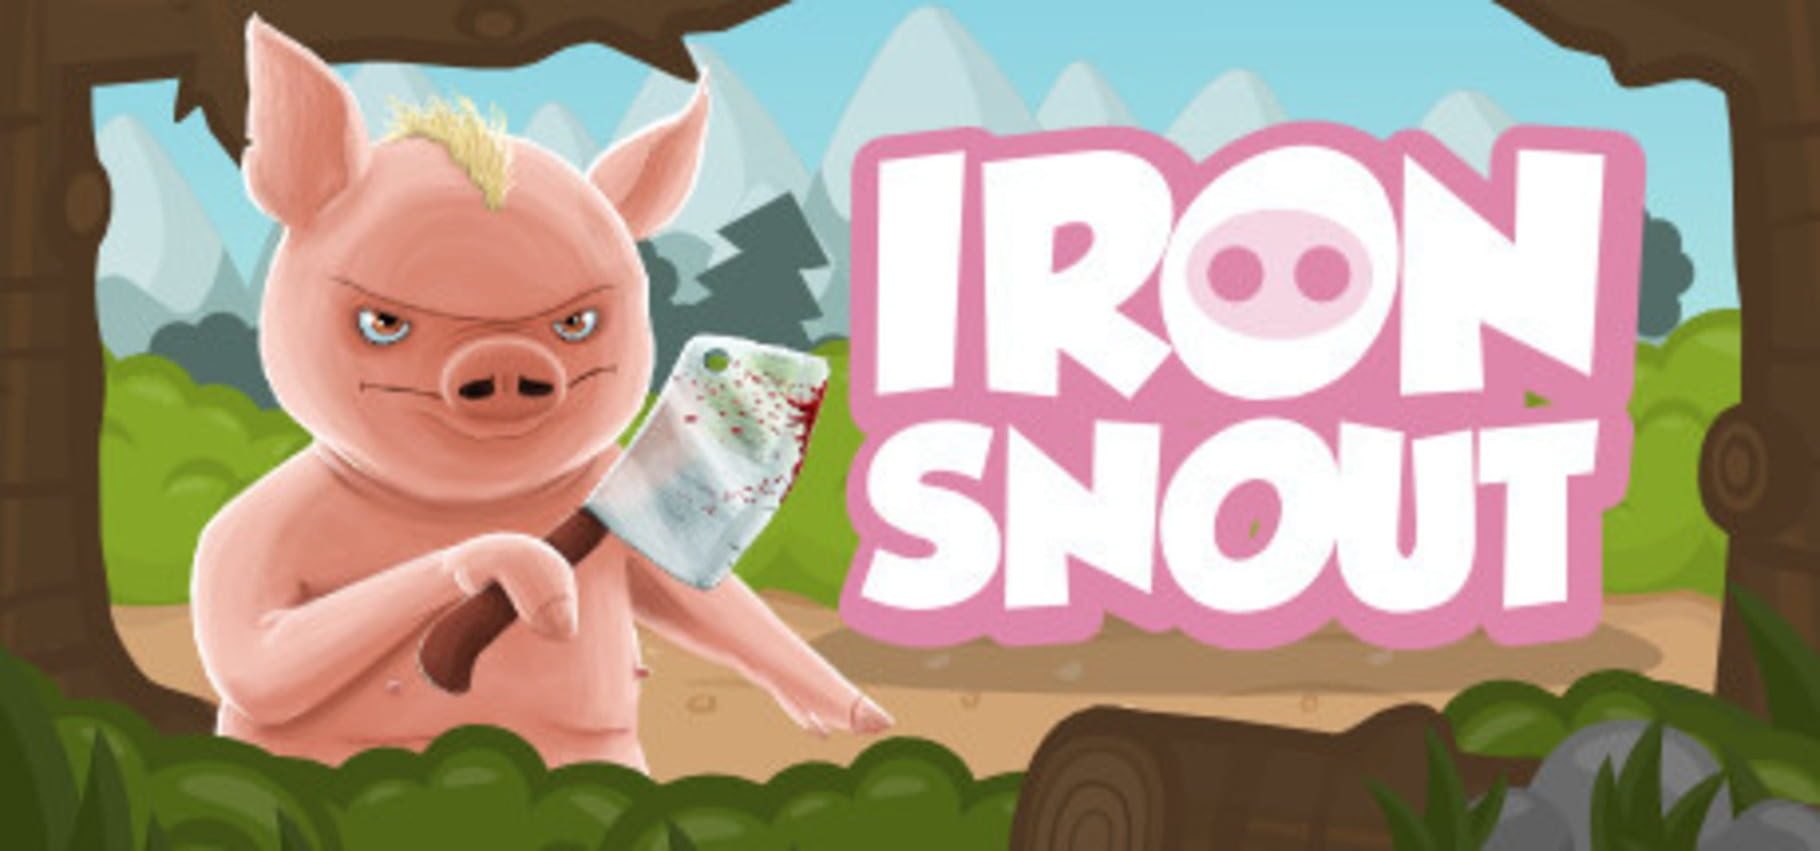 buy Iron Snout cd key for all platform